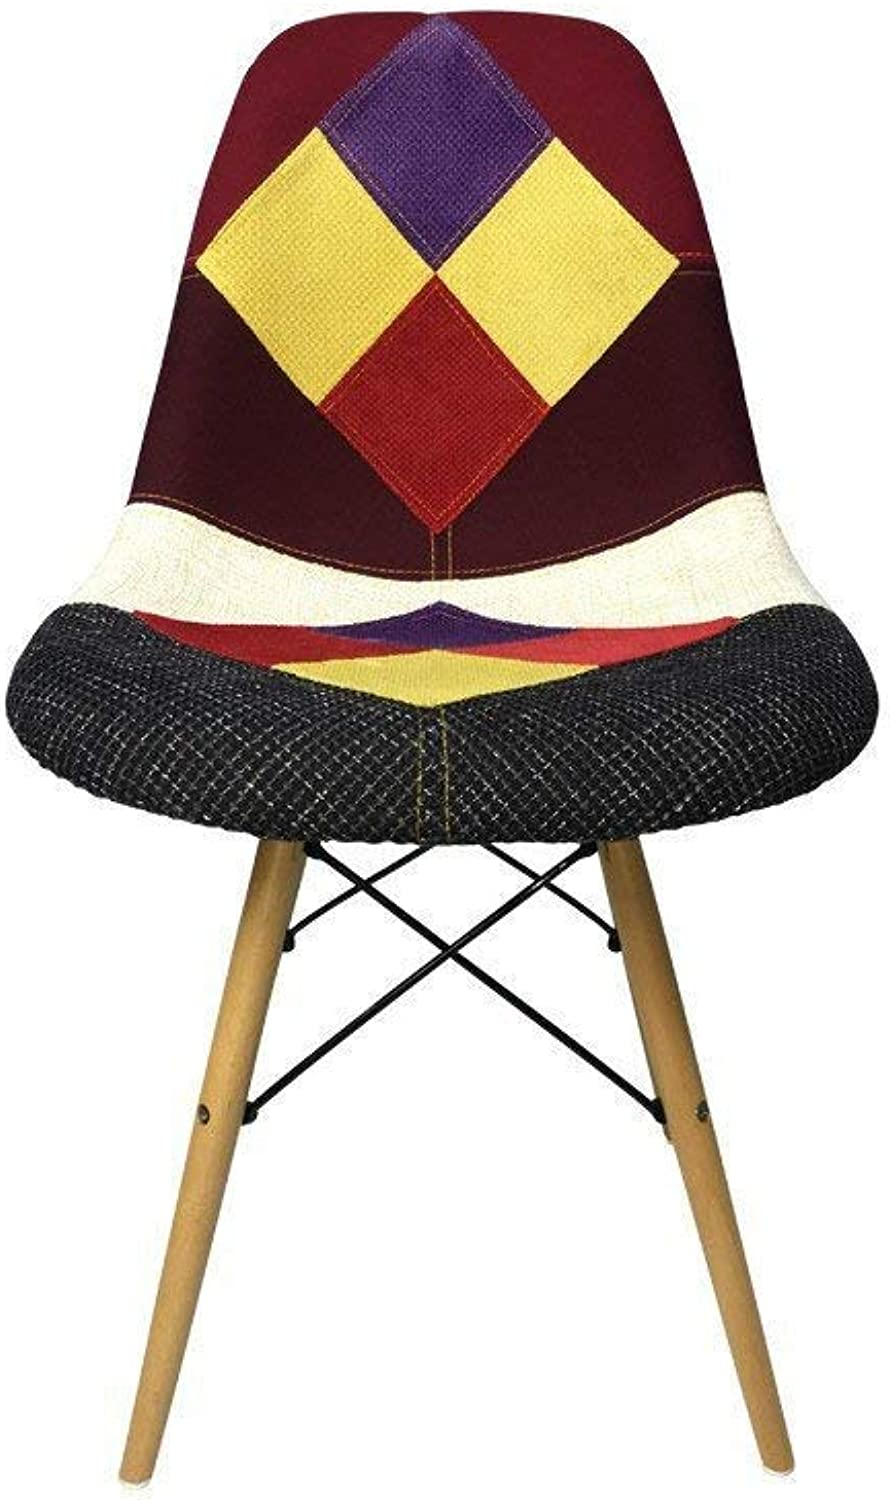 DSW Eiffel Dining Chair, Patchwork E Fabric